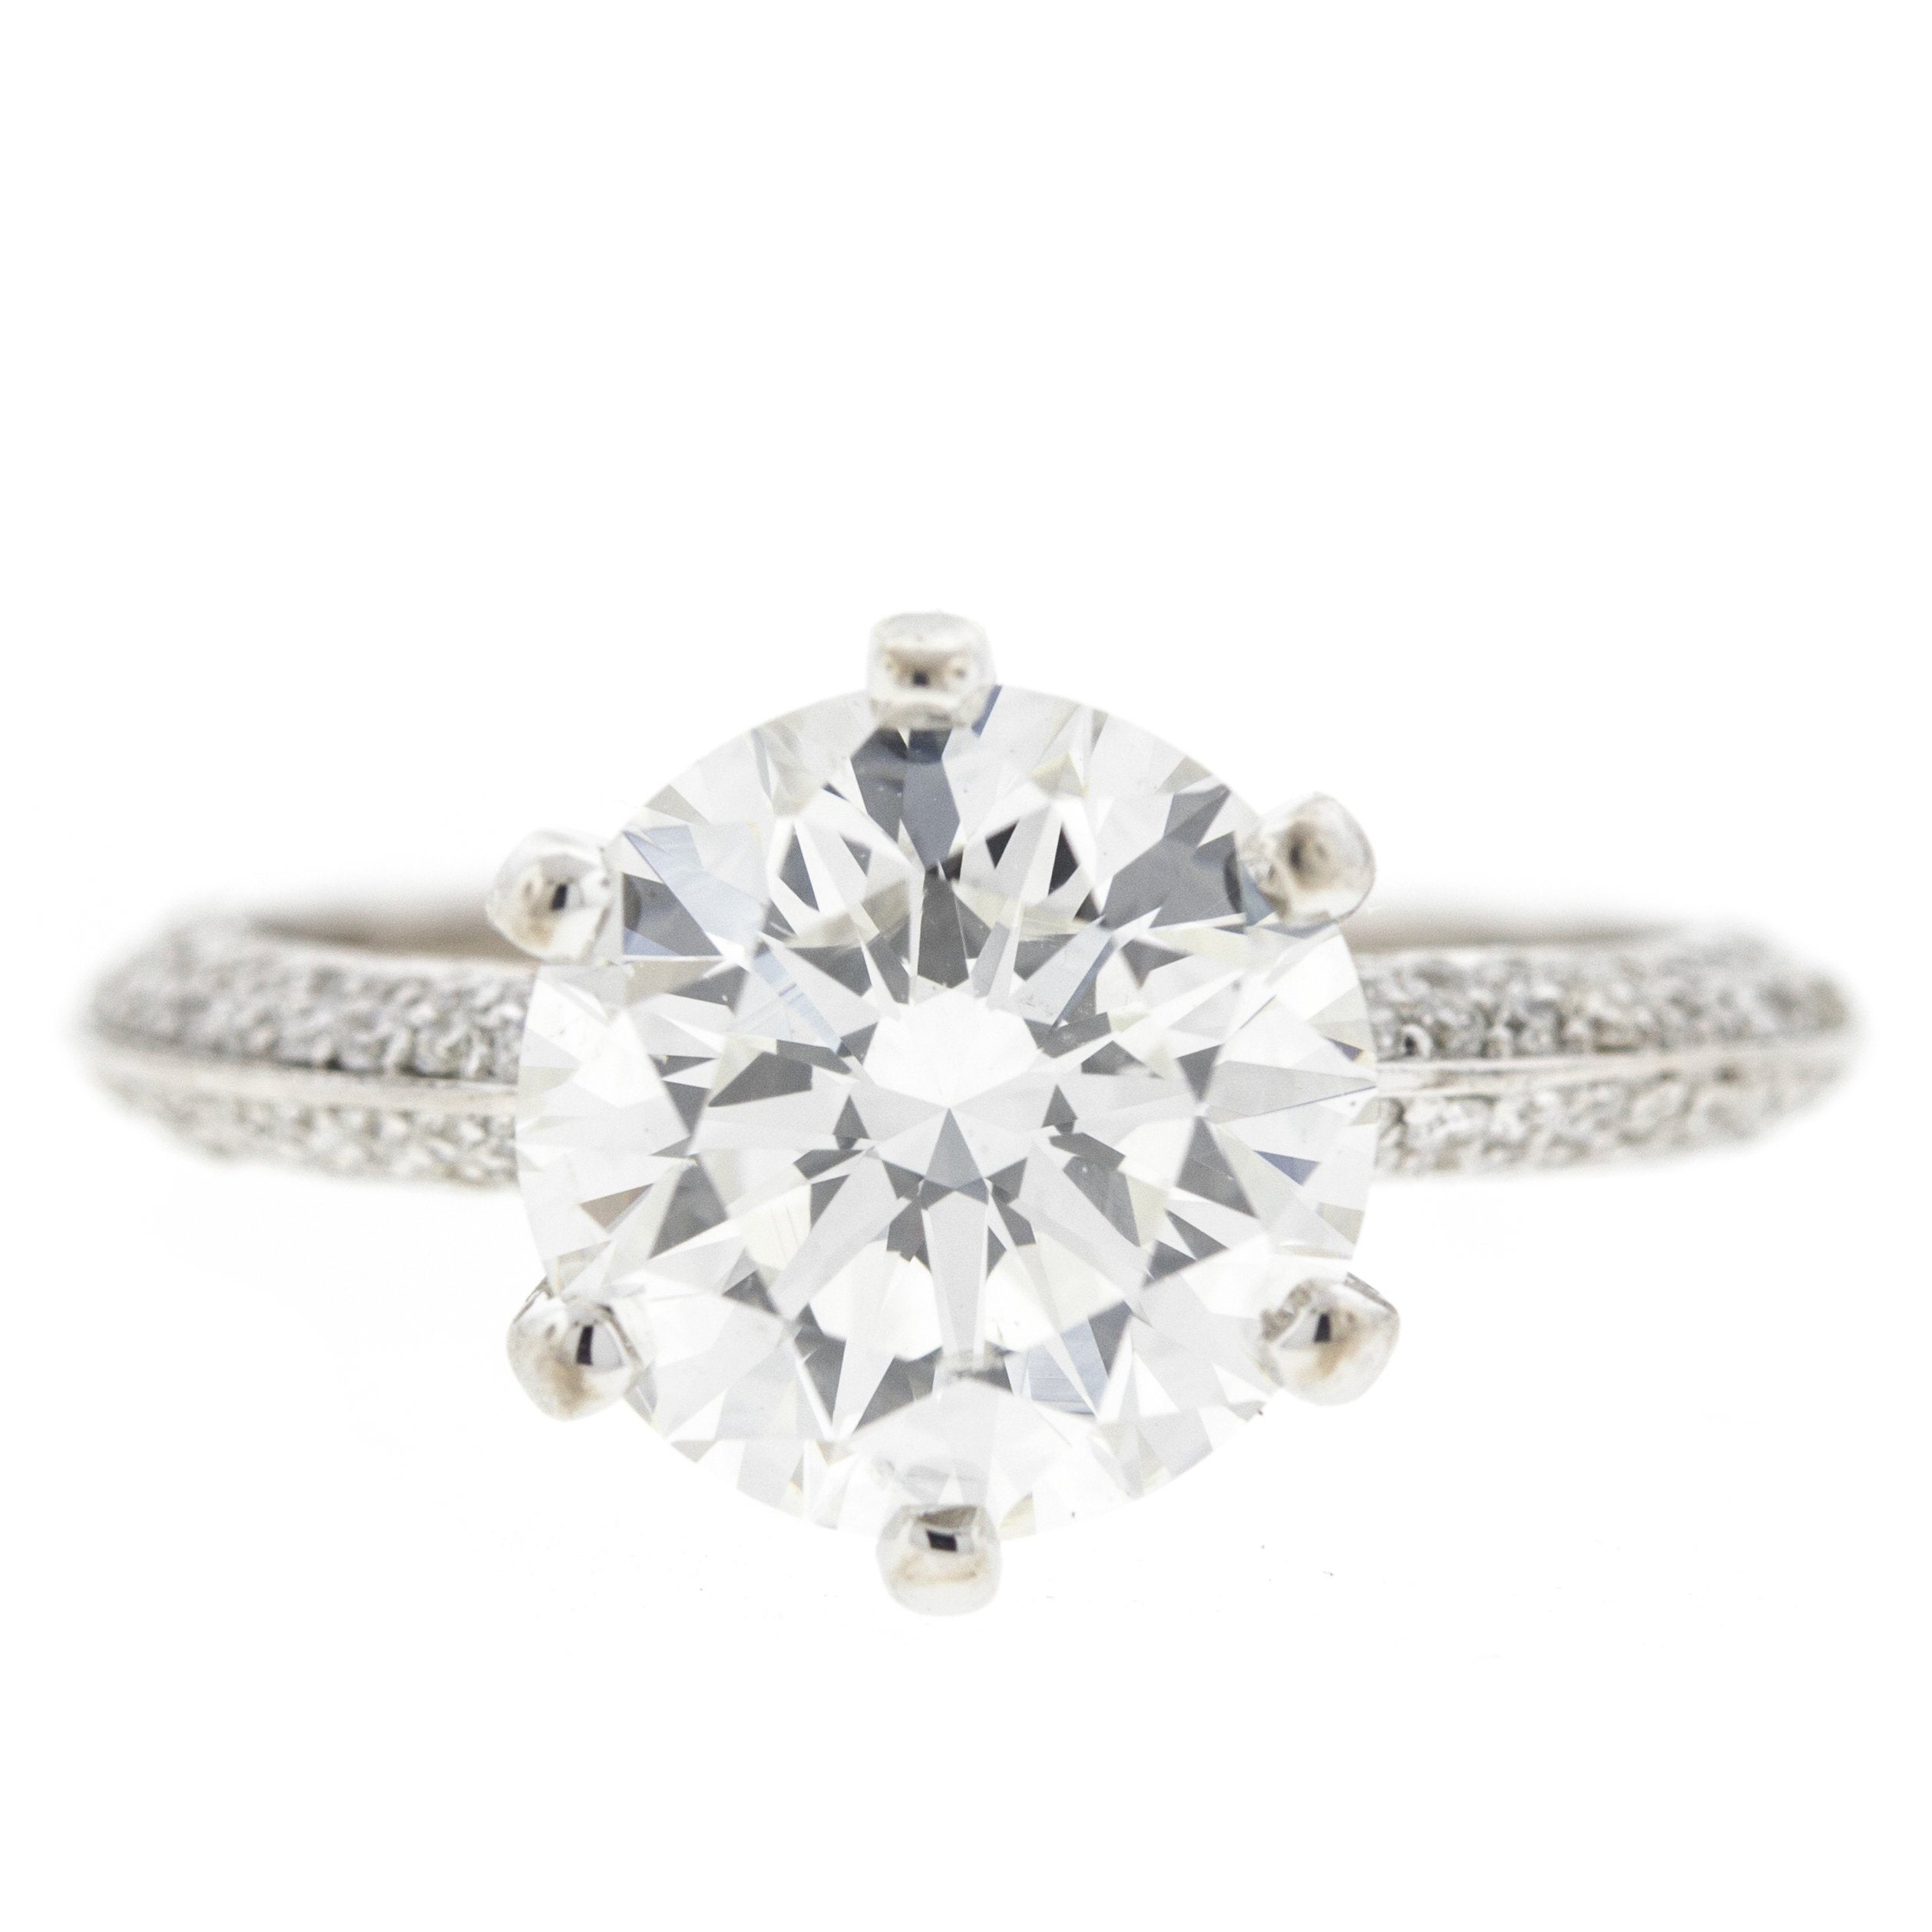 2.51 Carat Six Prong Diamond Encrusted Pave Engagement Ring 'GIA'